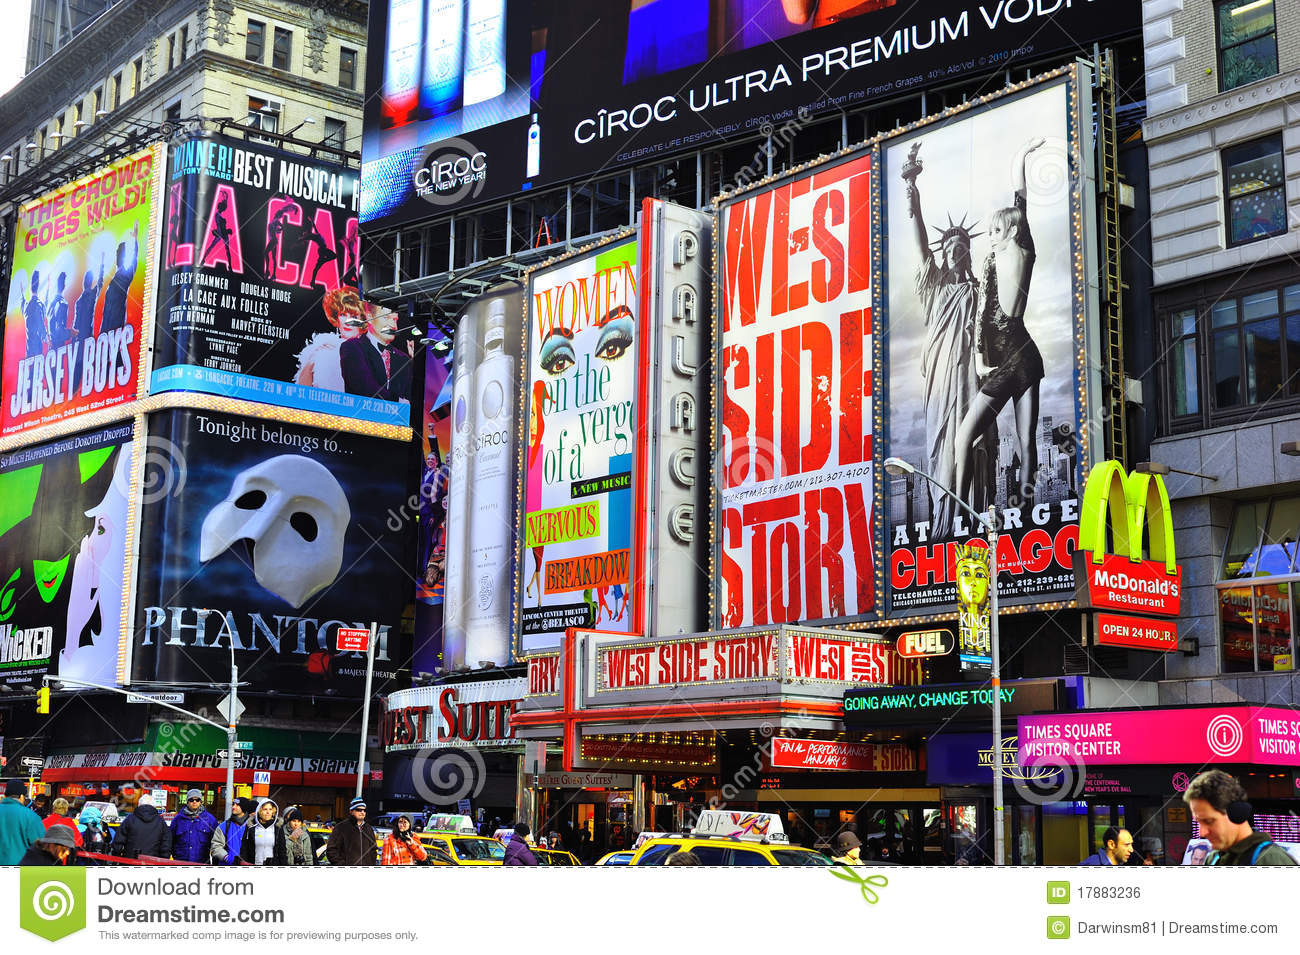 Image a951f684 Df3d 11e3 81d1 0019bb2963f4 in addition 93454 also Royalty Free Stock Image Times Square Billboards Image17883236 further 1216377 Joey Coco Diaz Chicago likewise File Guy Lombardo 1944. on chicago billboard